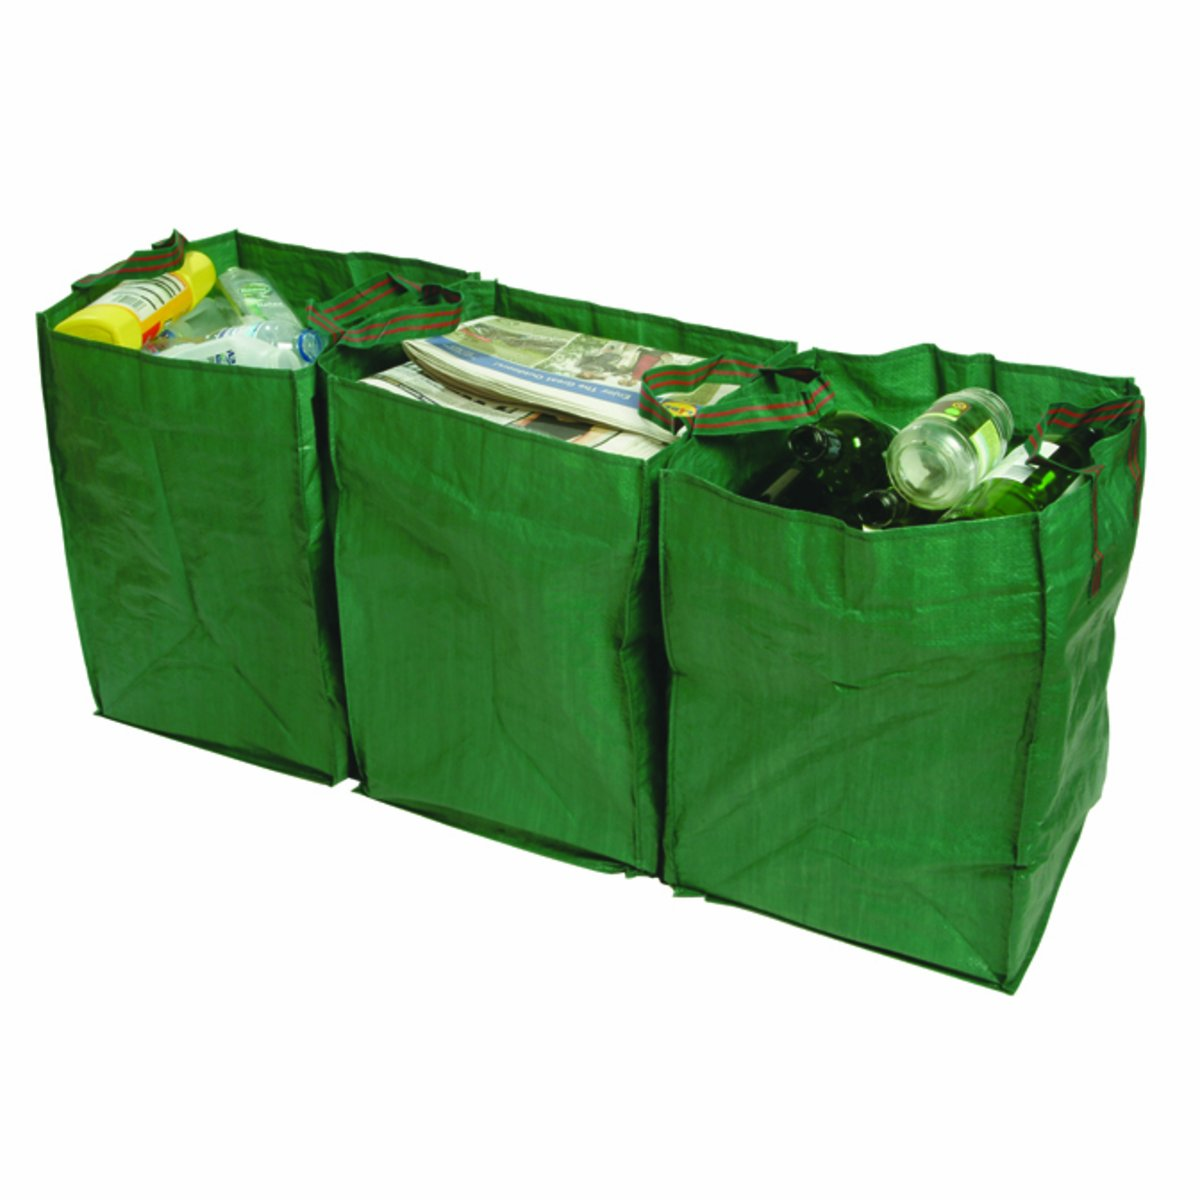 Bosmere G347 3 Recycling Bag Bosmere Products Ltd